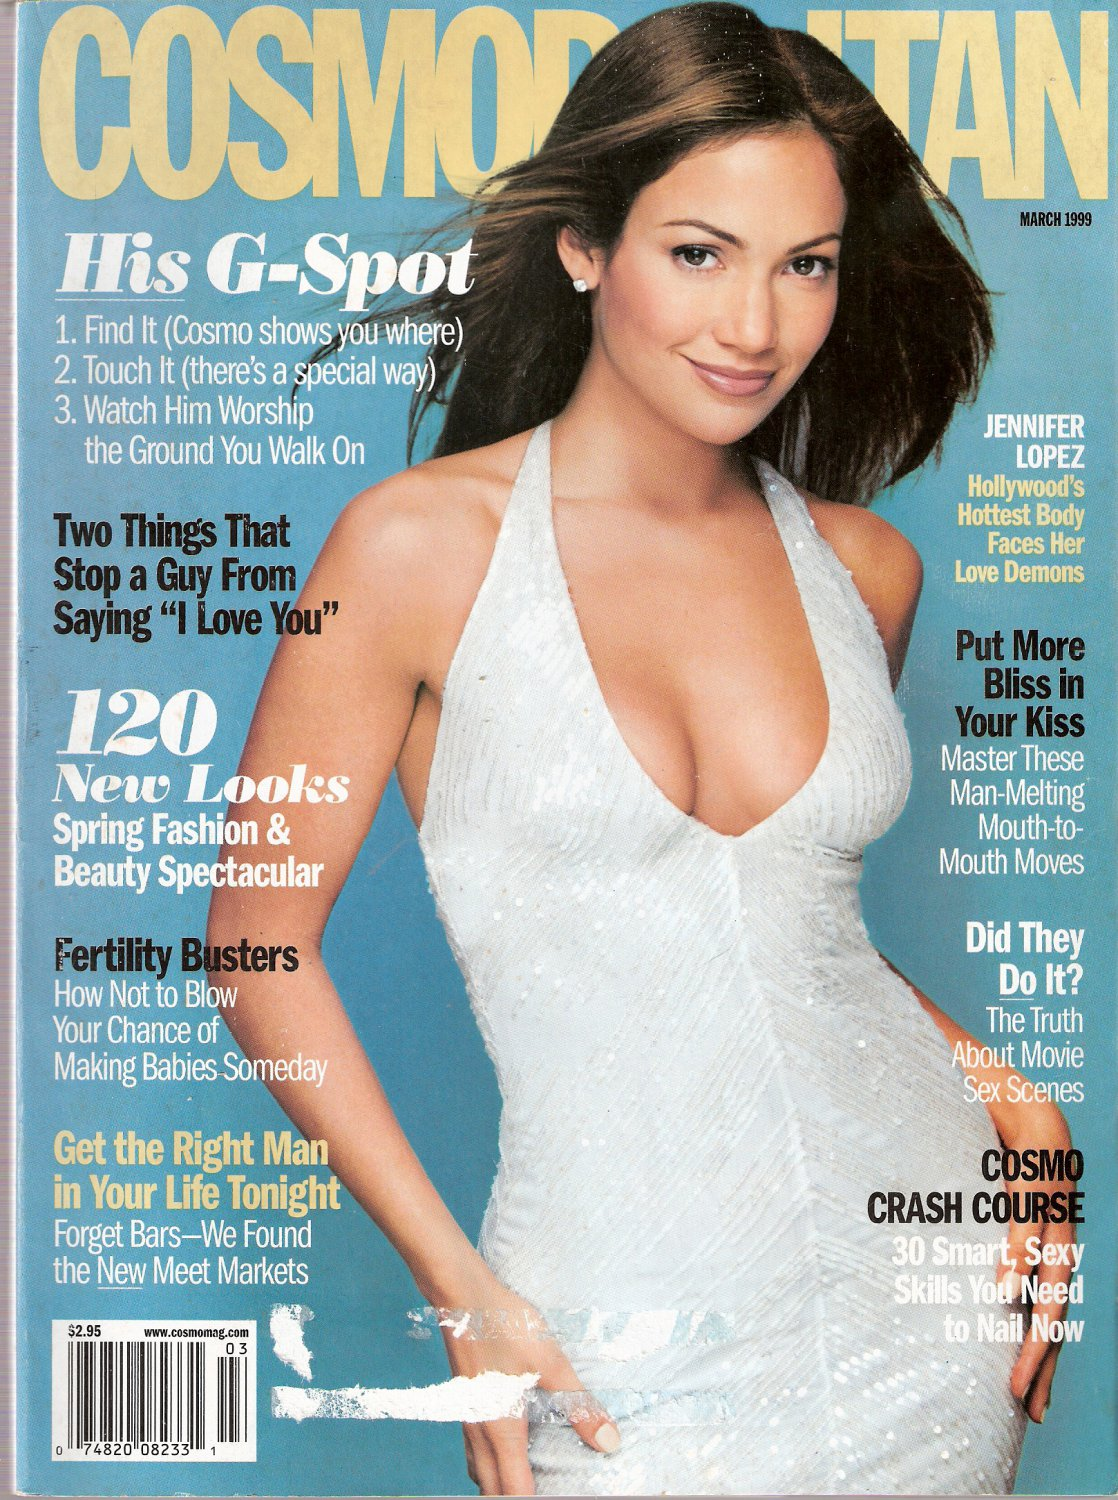 Cosmopolitan Magazine March 1999 Jennifer Lopez